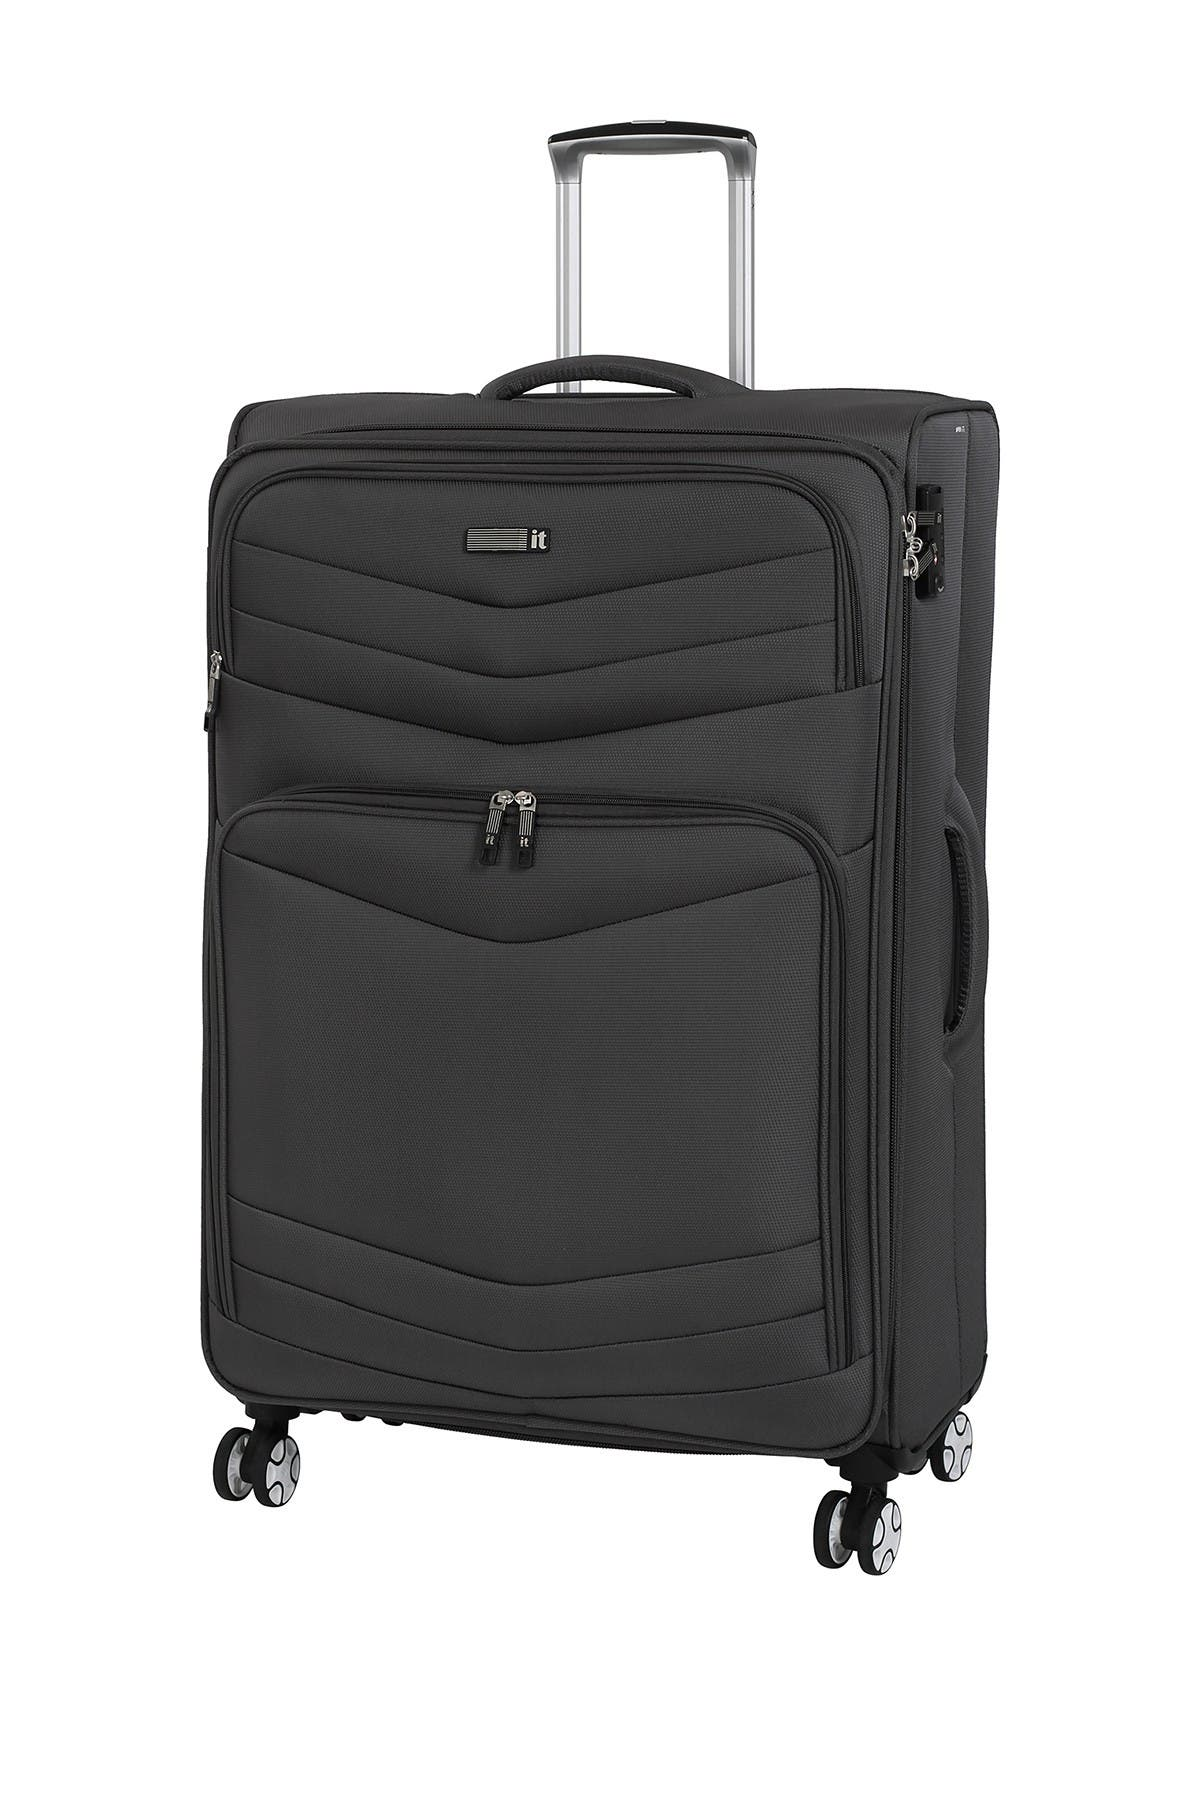 "Image of it luggage 31.7"" Intrepid 8 Wheel with Expander"